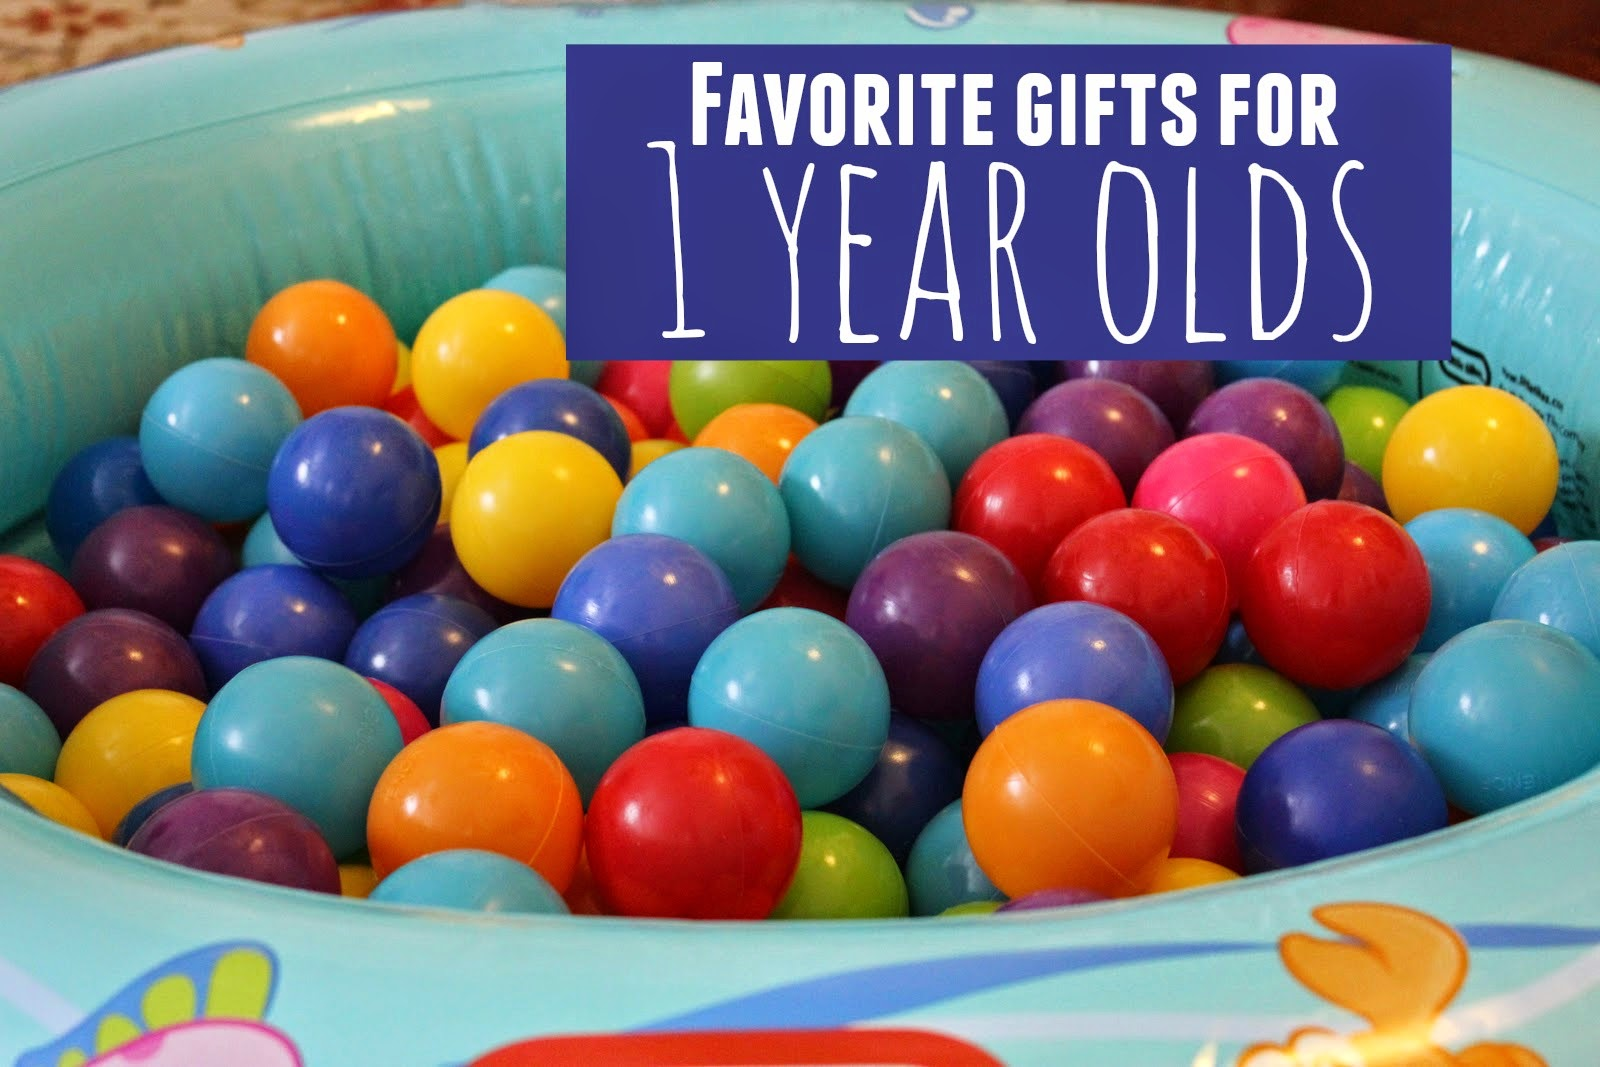 Toys For 1 Year Old : Toddler approved!: favorite gifts for one year olds {toddler